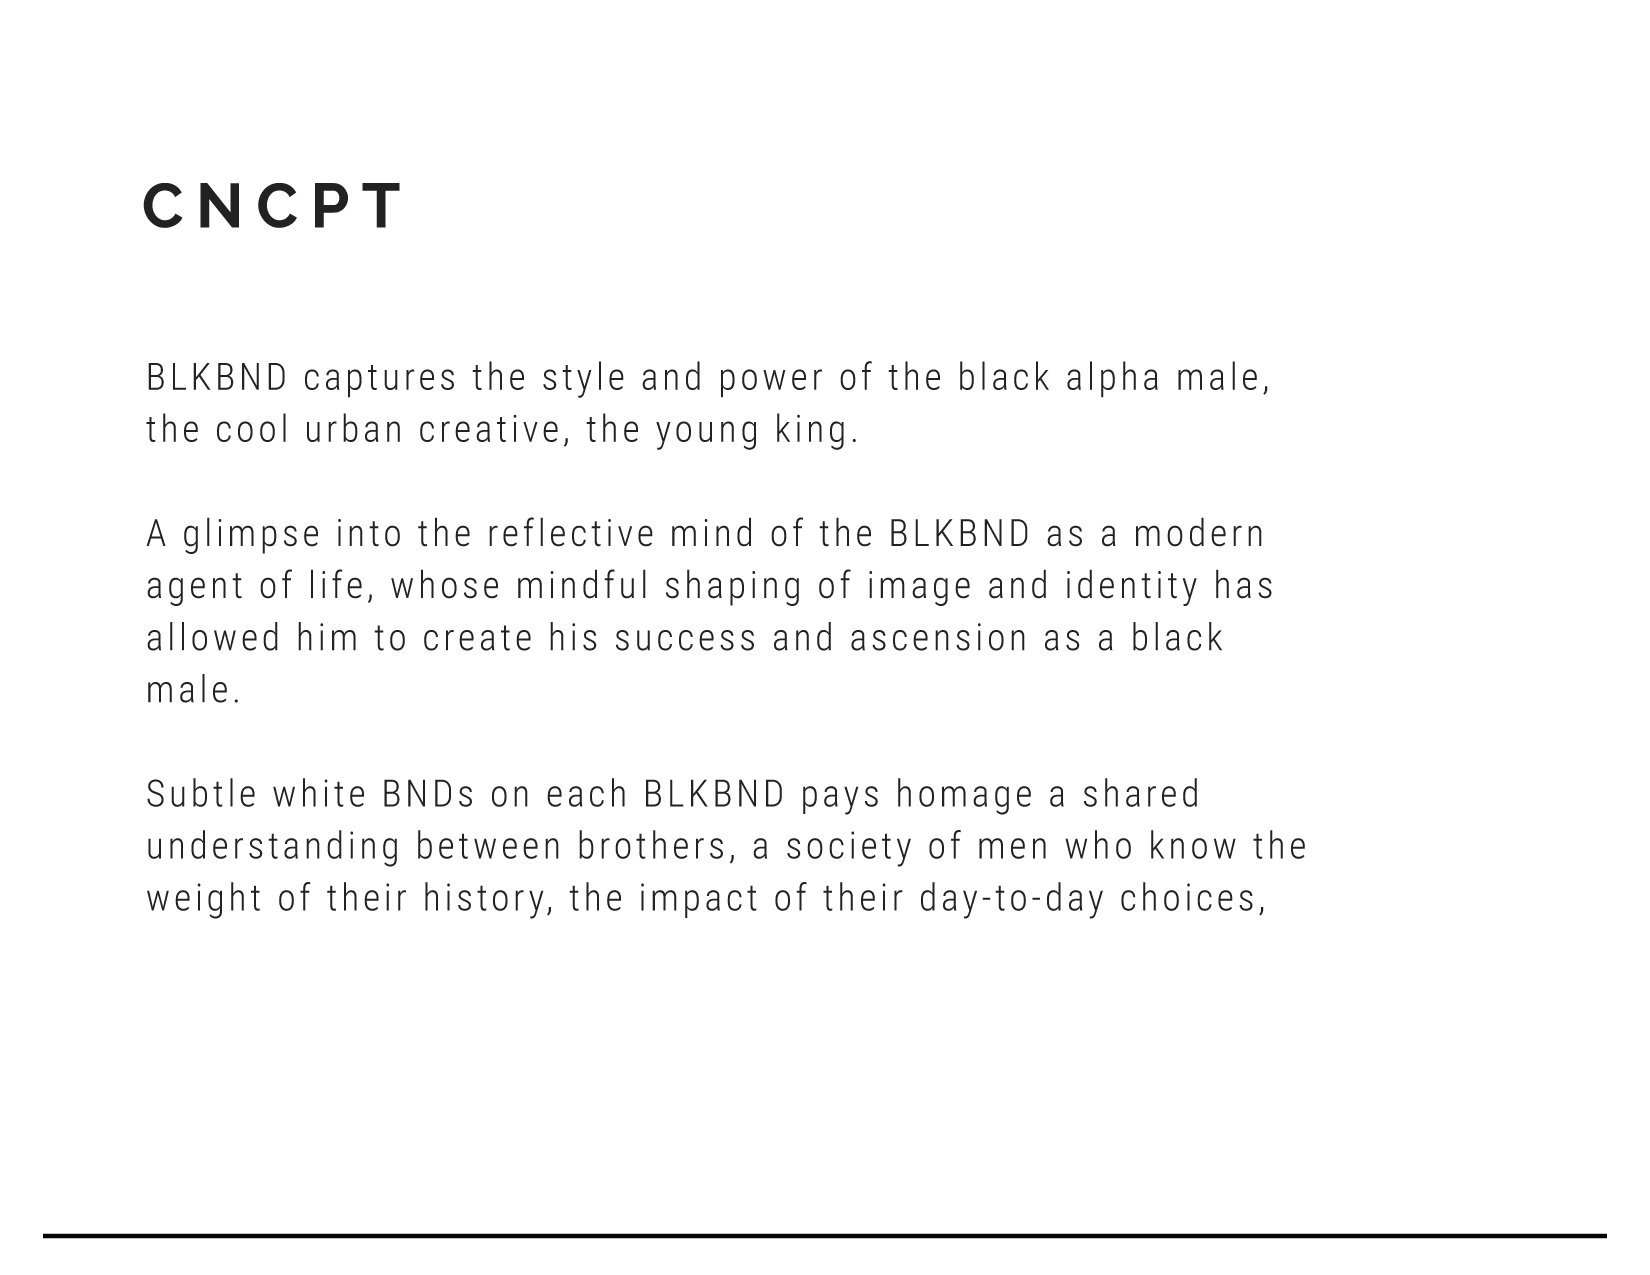 BLKBND_Gallery_2-CONCEPT.png